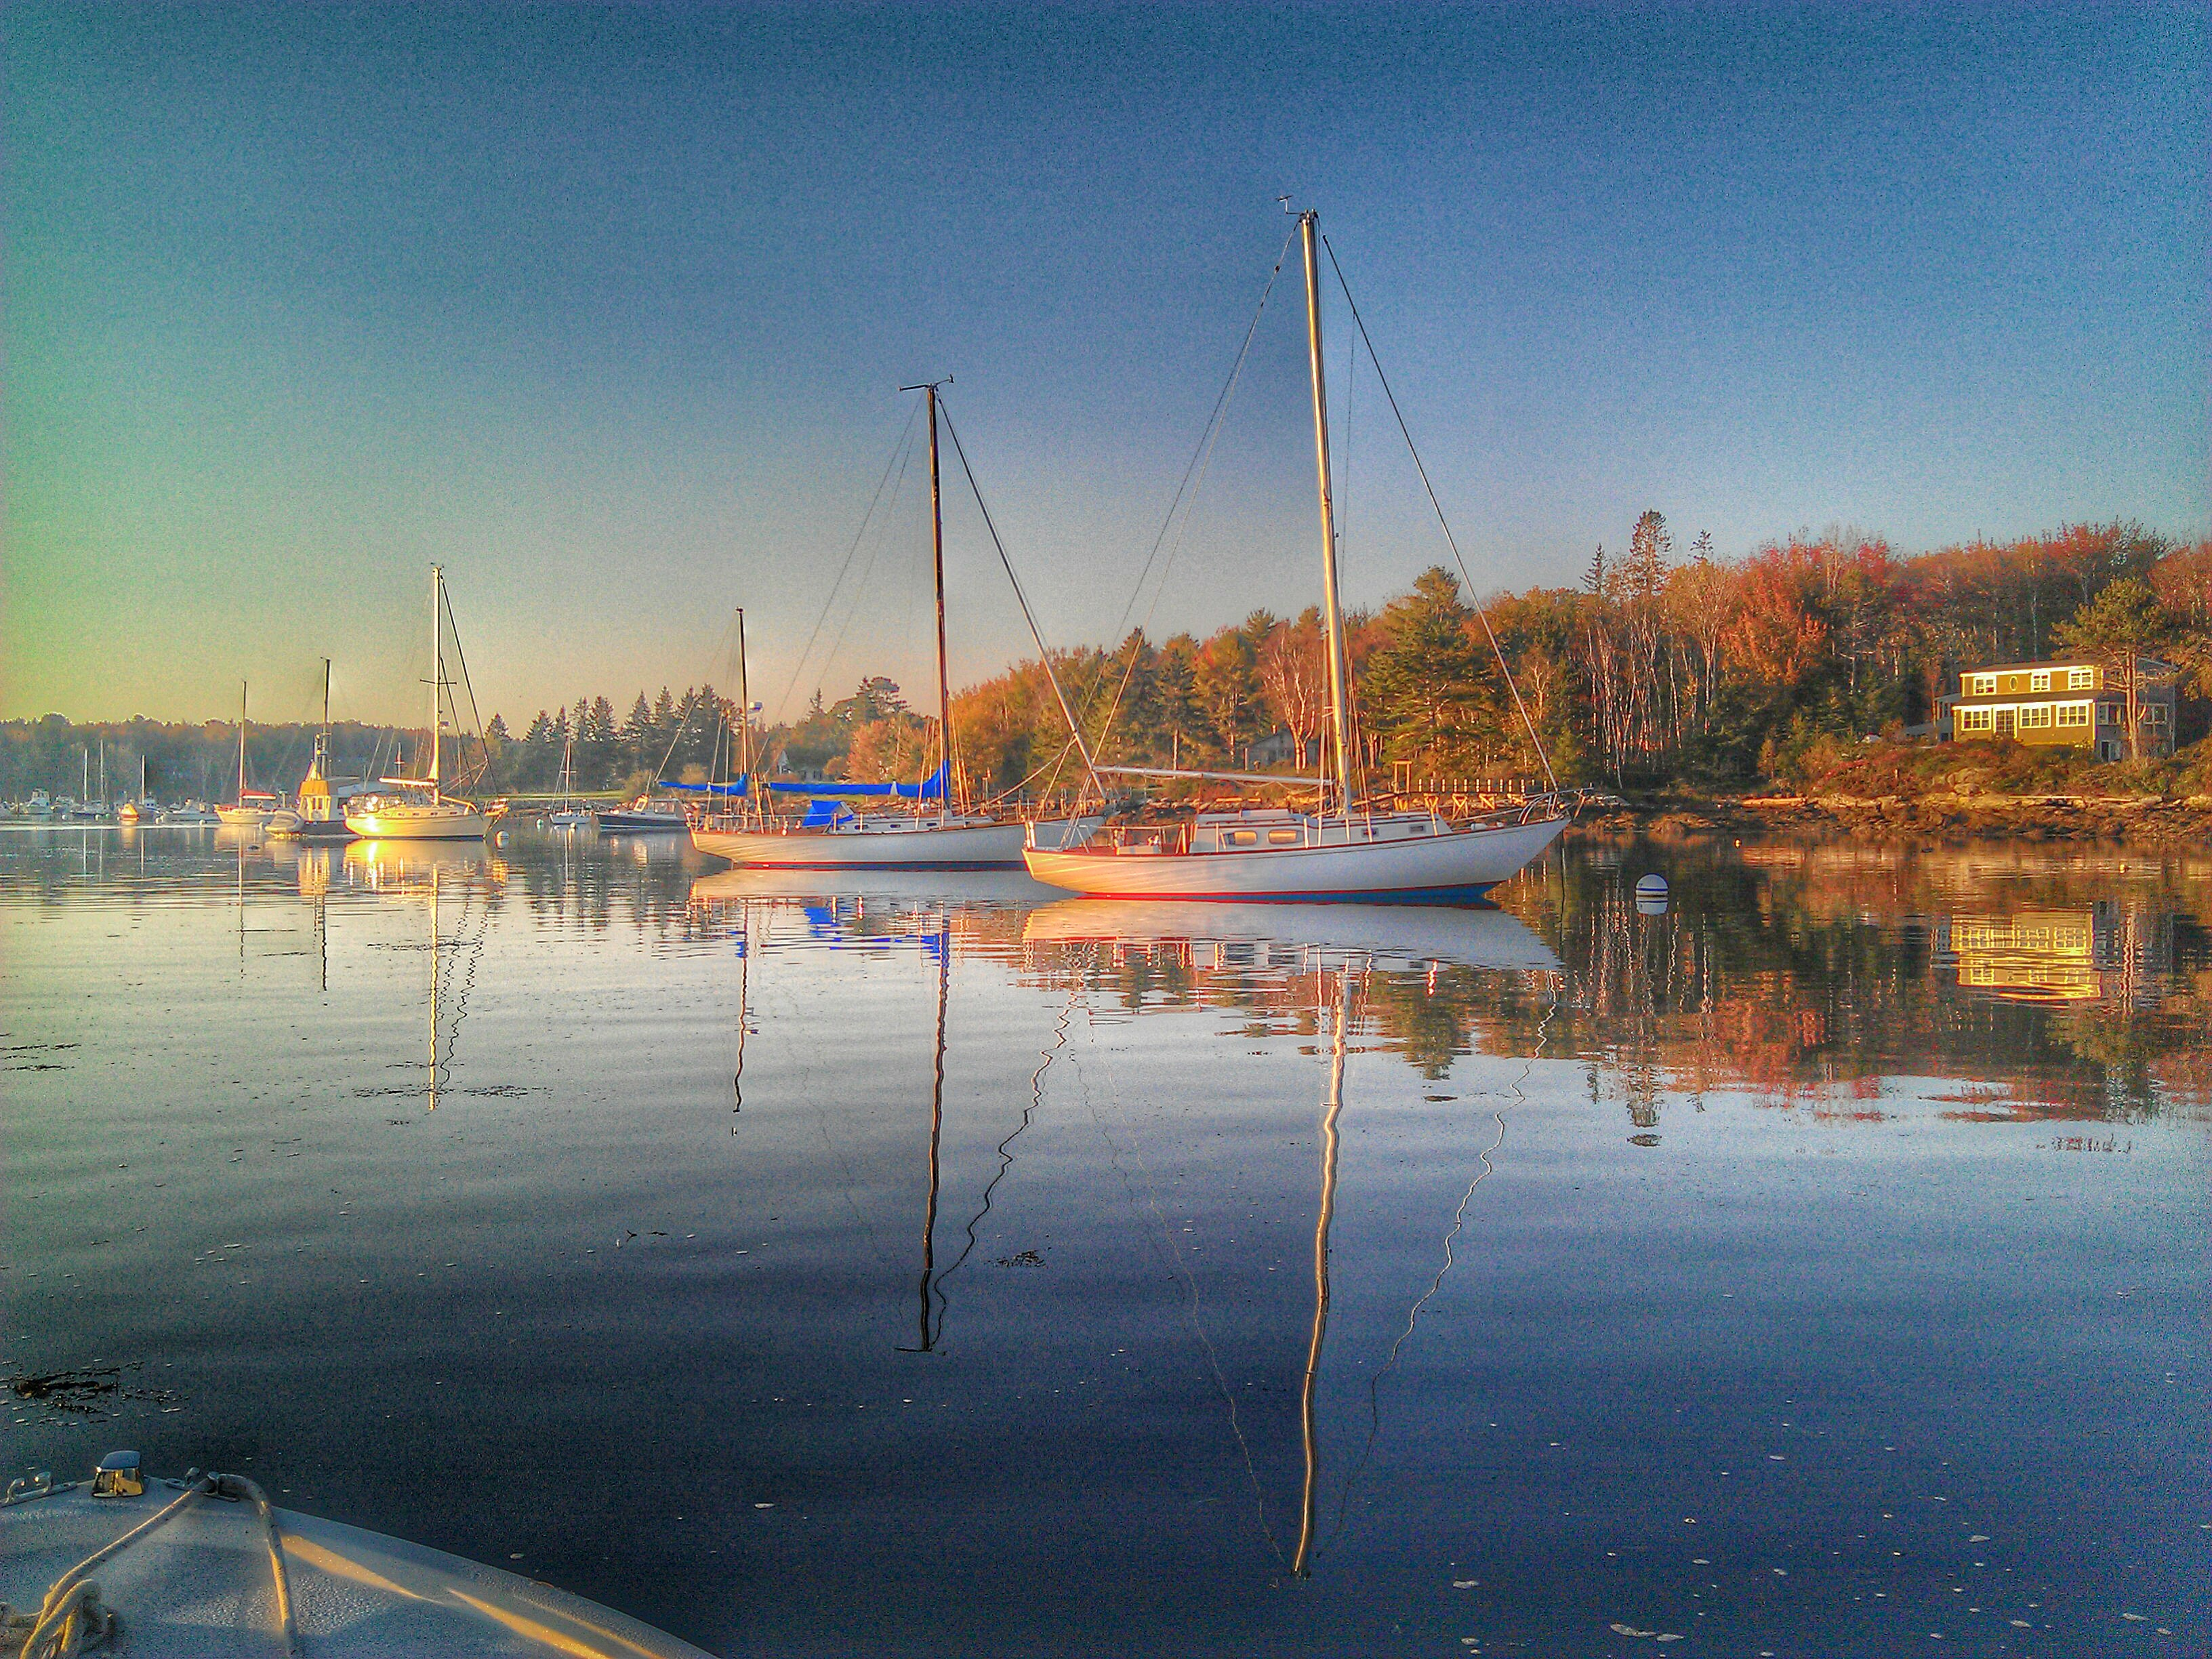 Boats on moorings in Maine at sunrise.